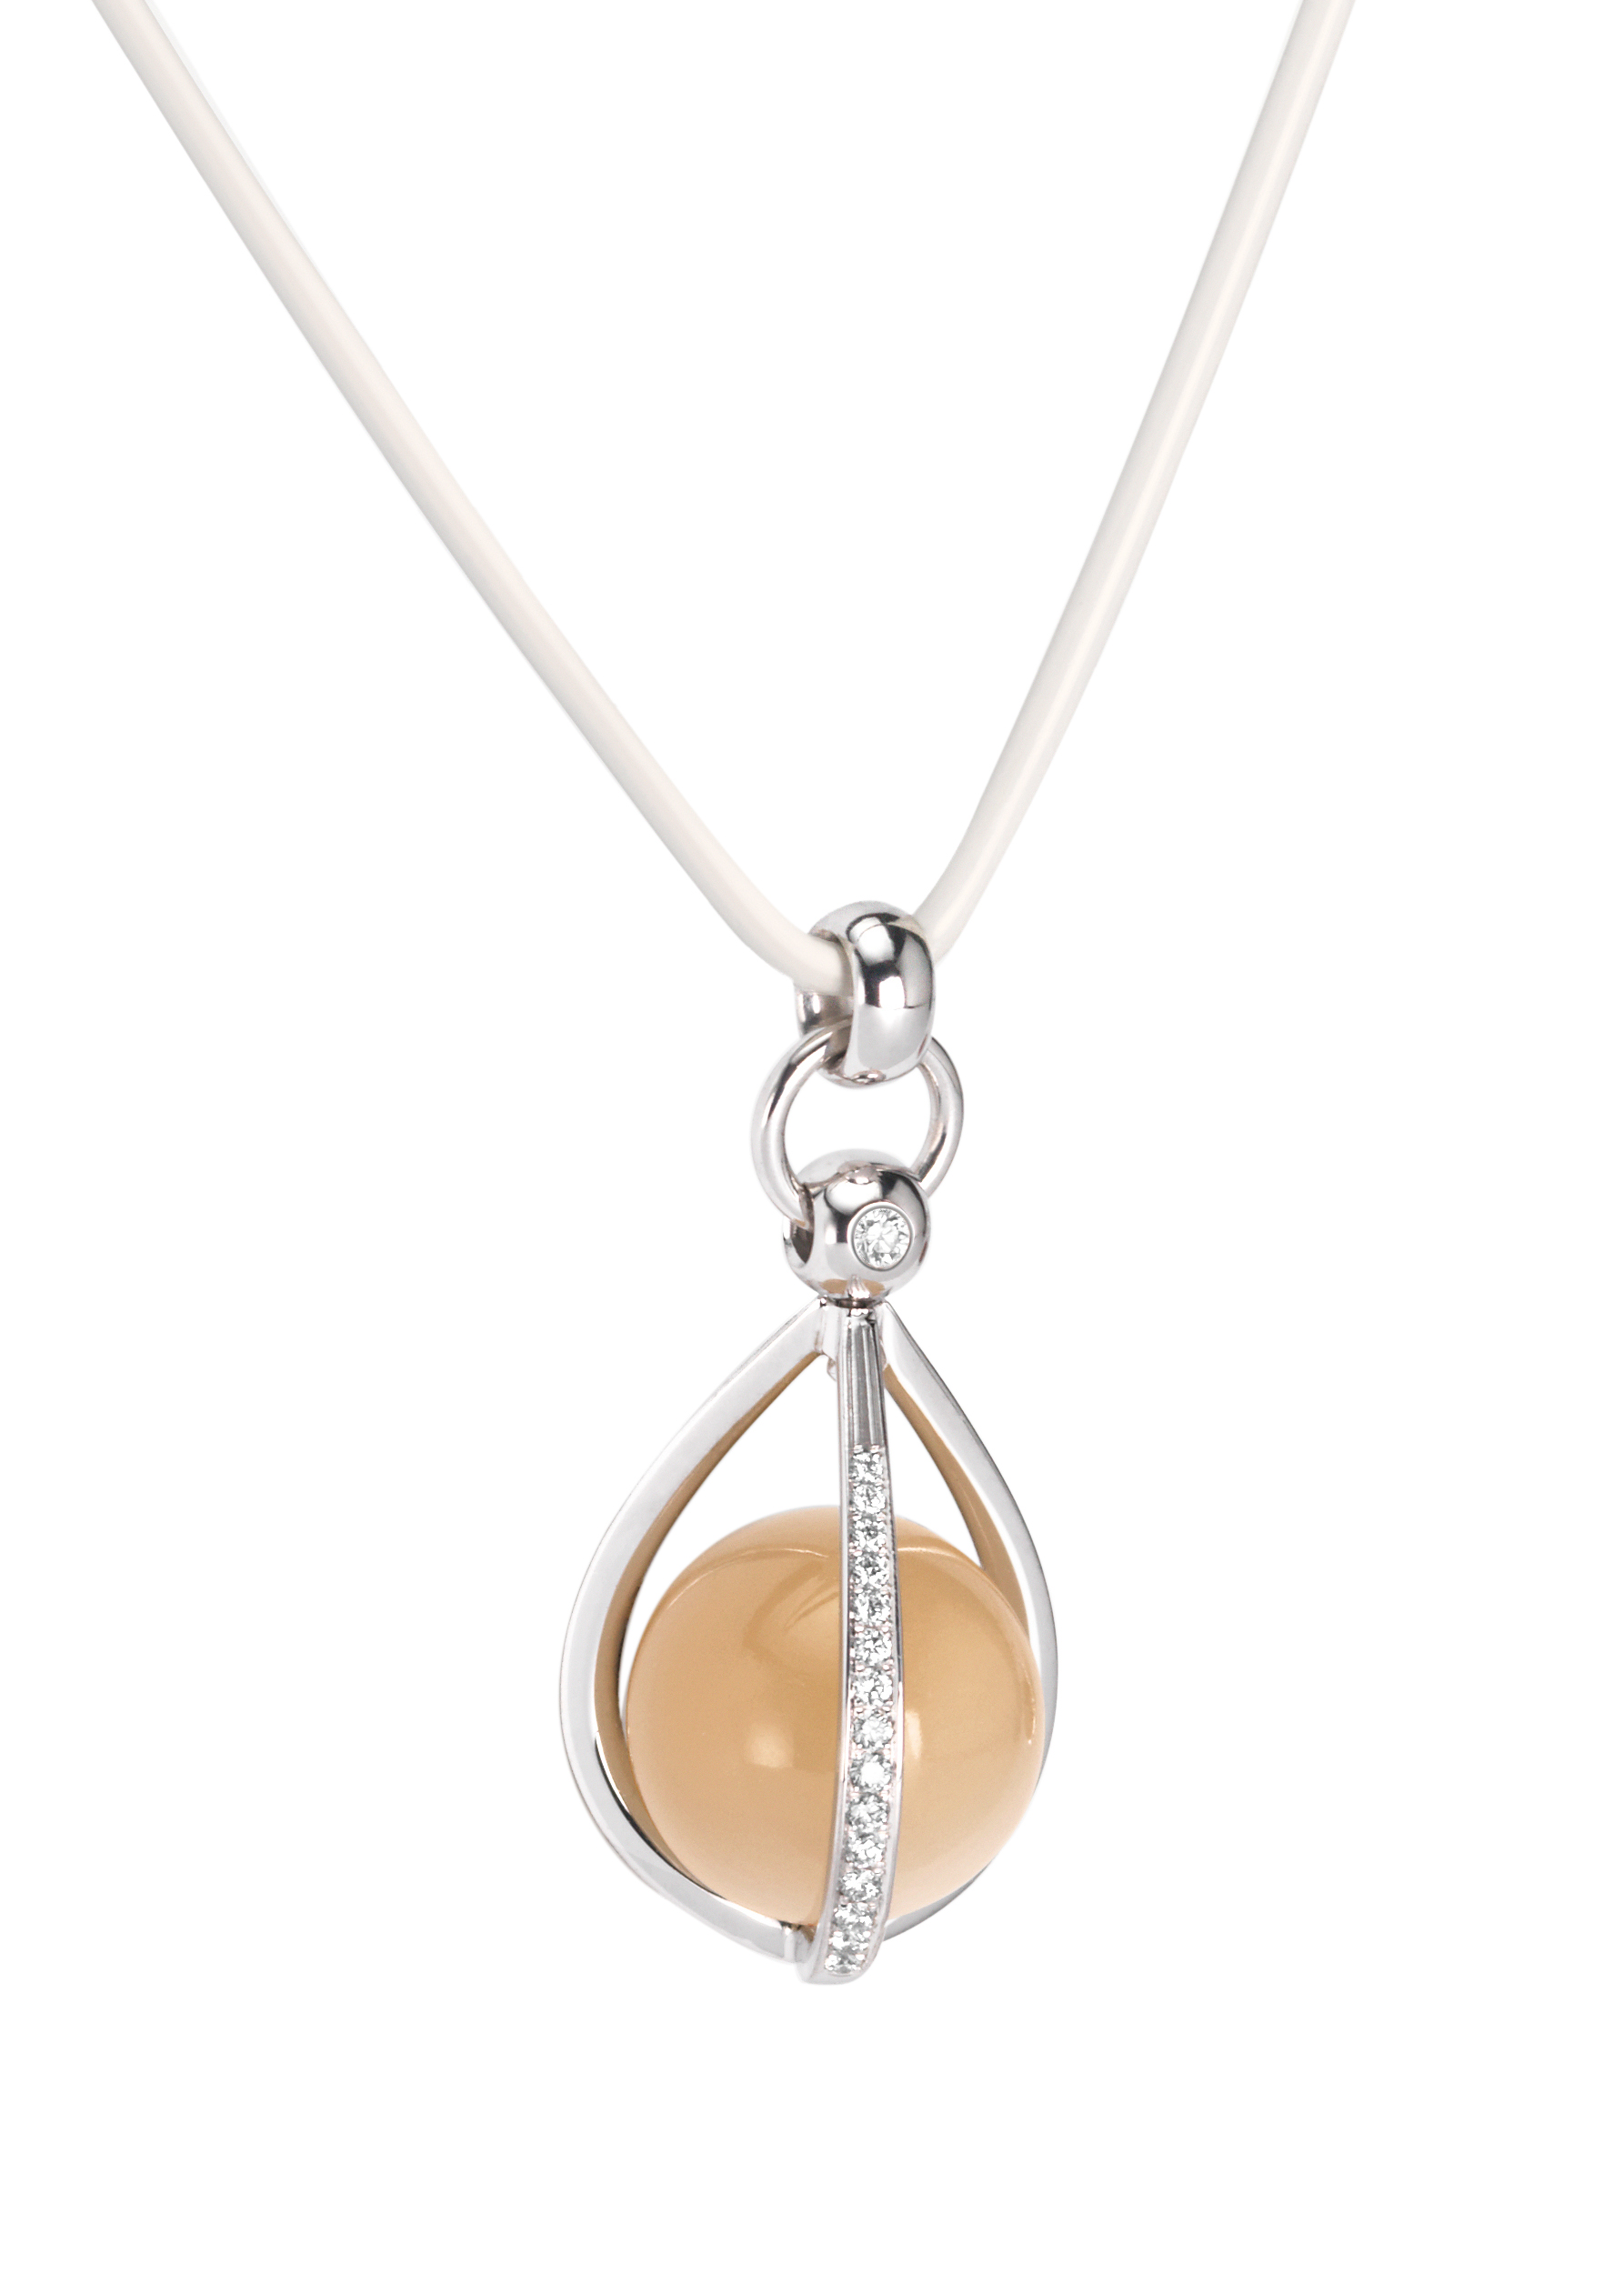 pendant with moonstone and diamonds Furrer Jacot